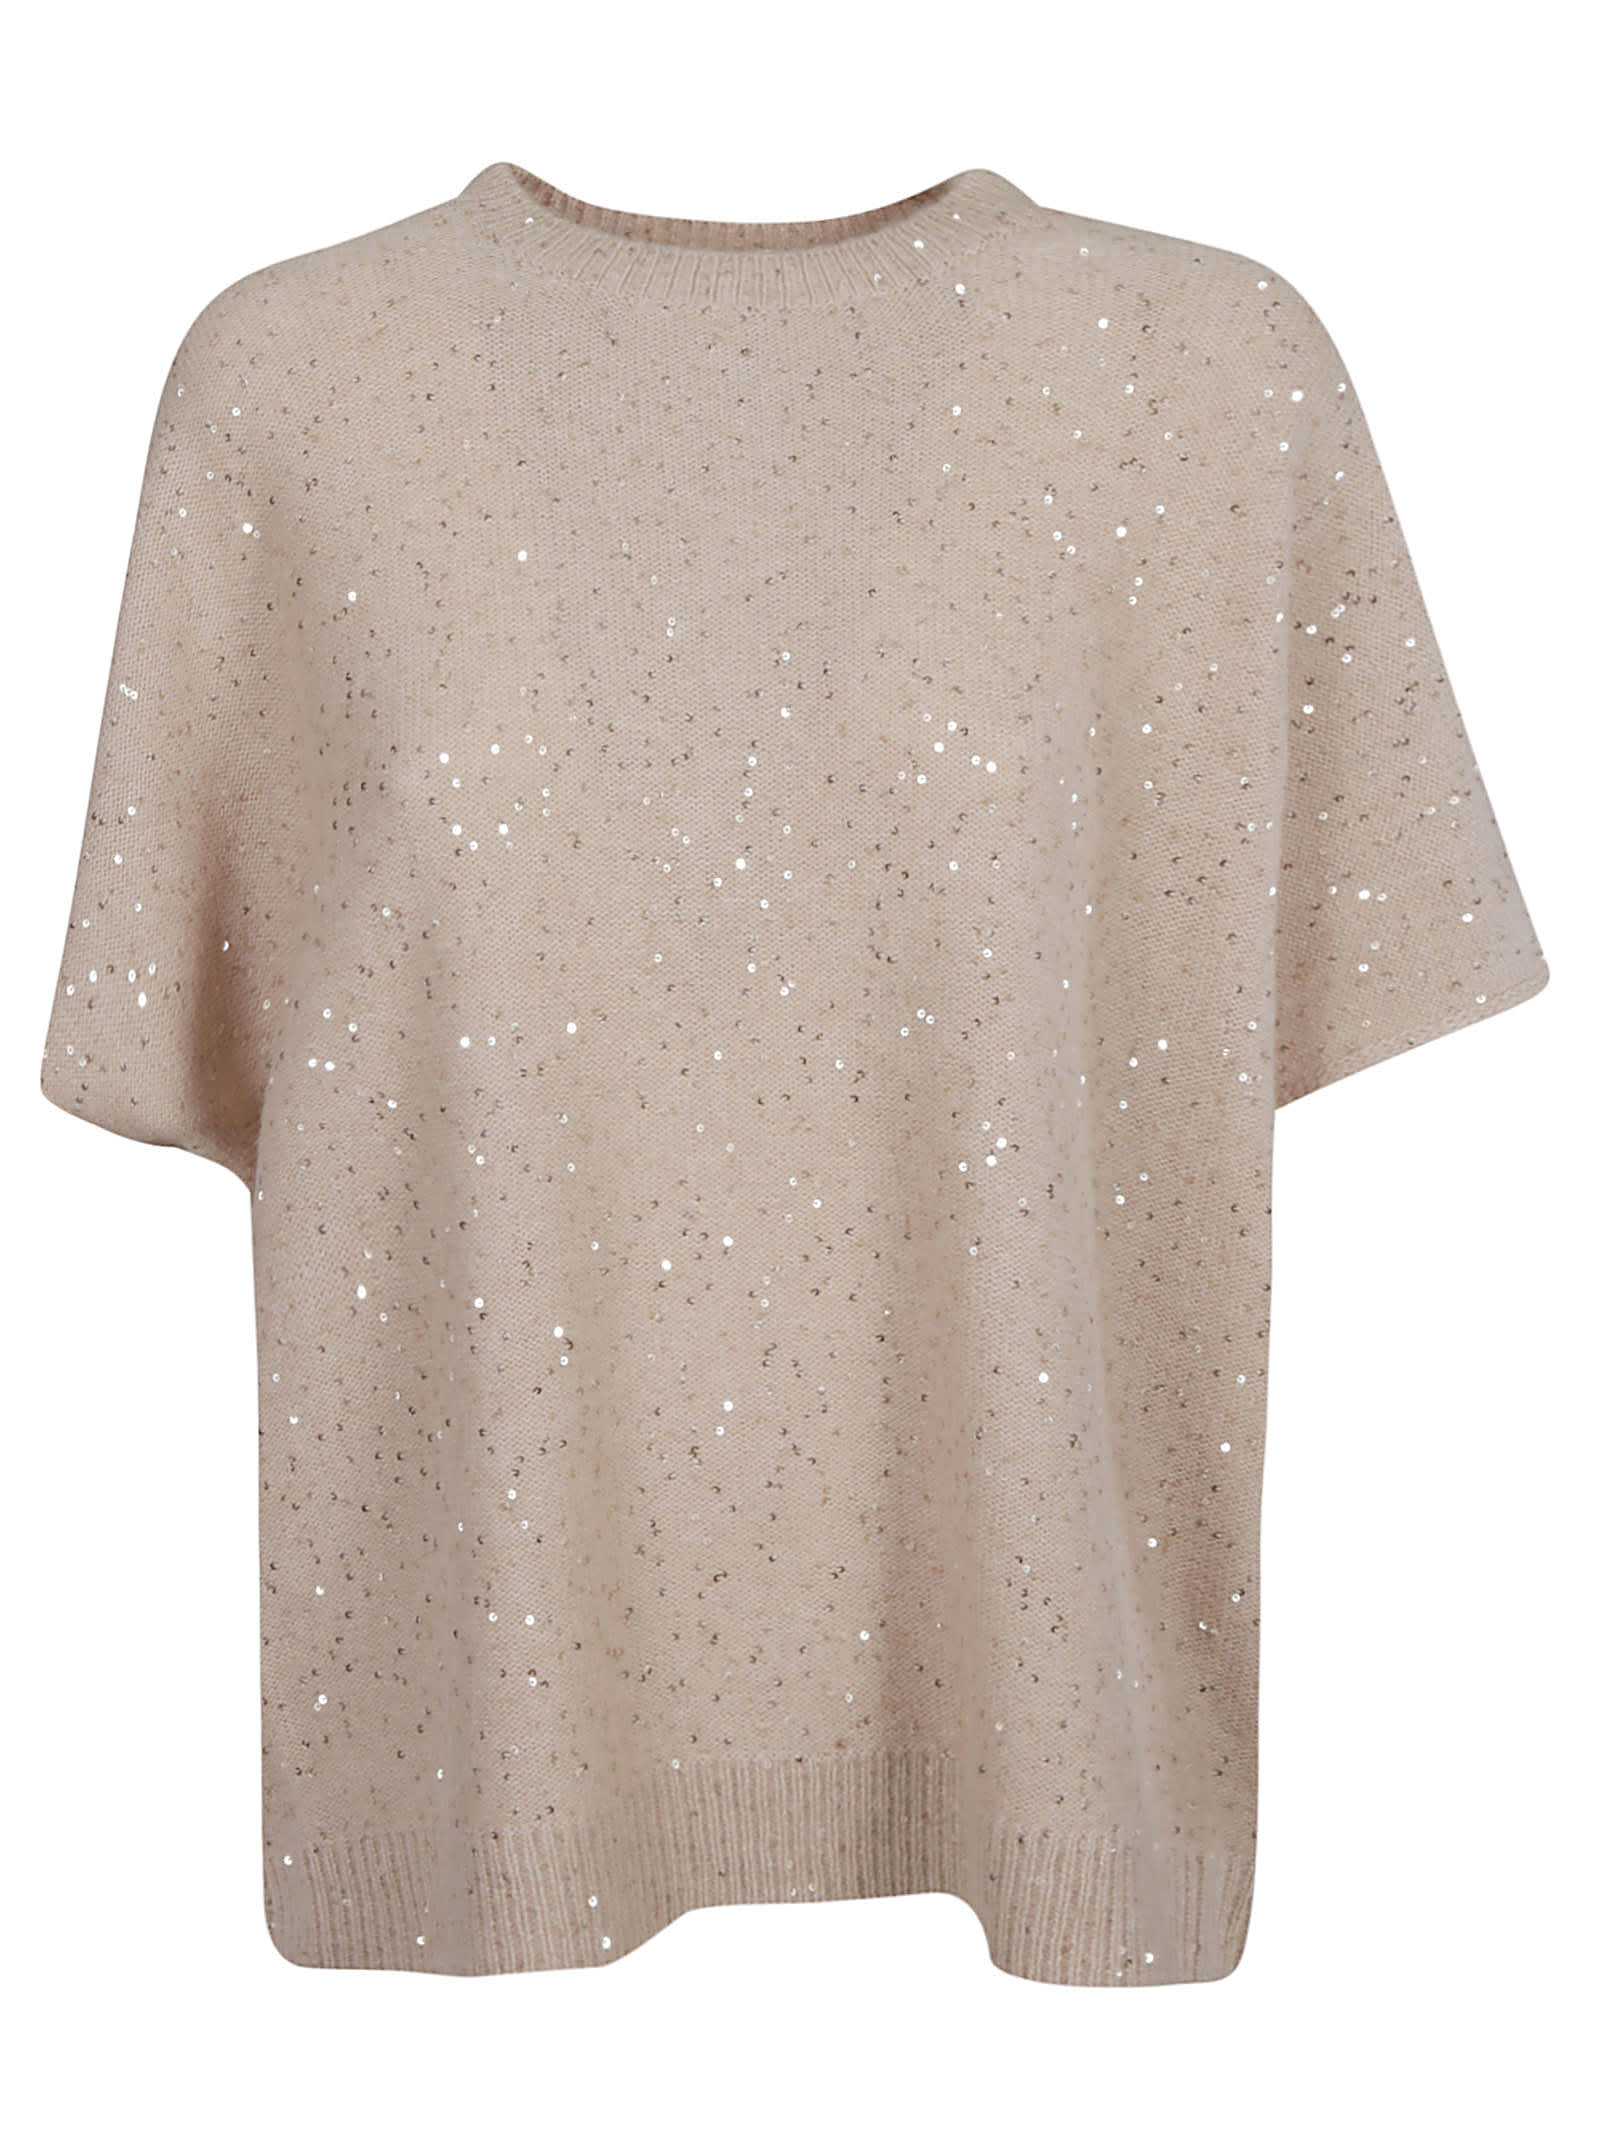 Fabiana Filippi Bead Embellished Sweater